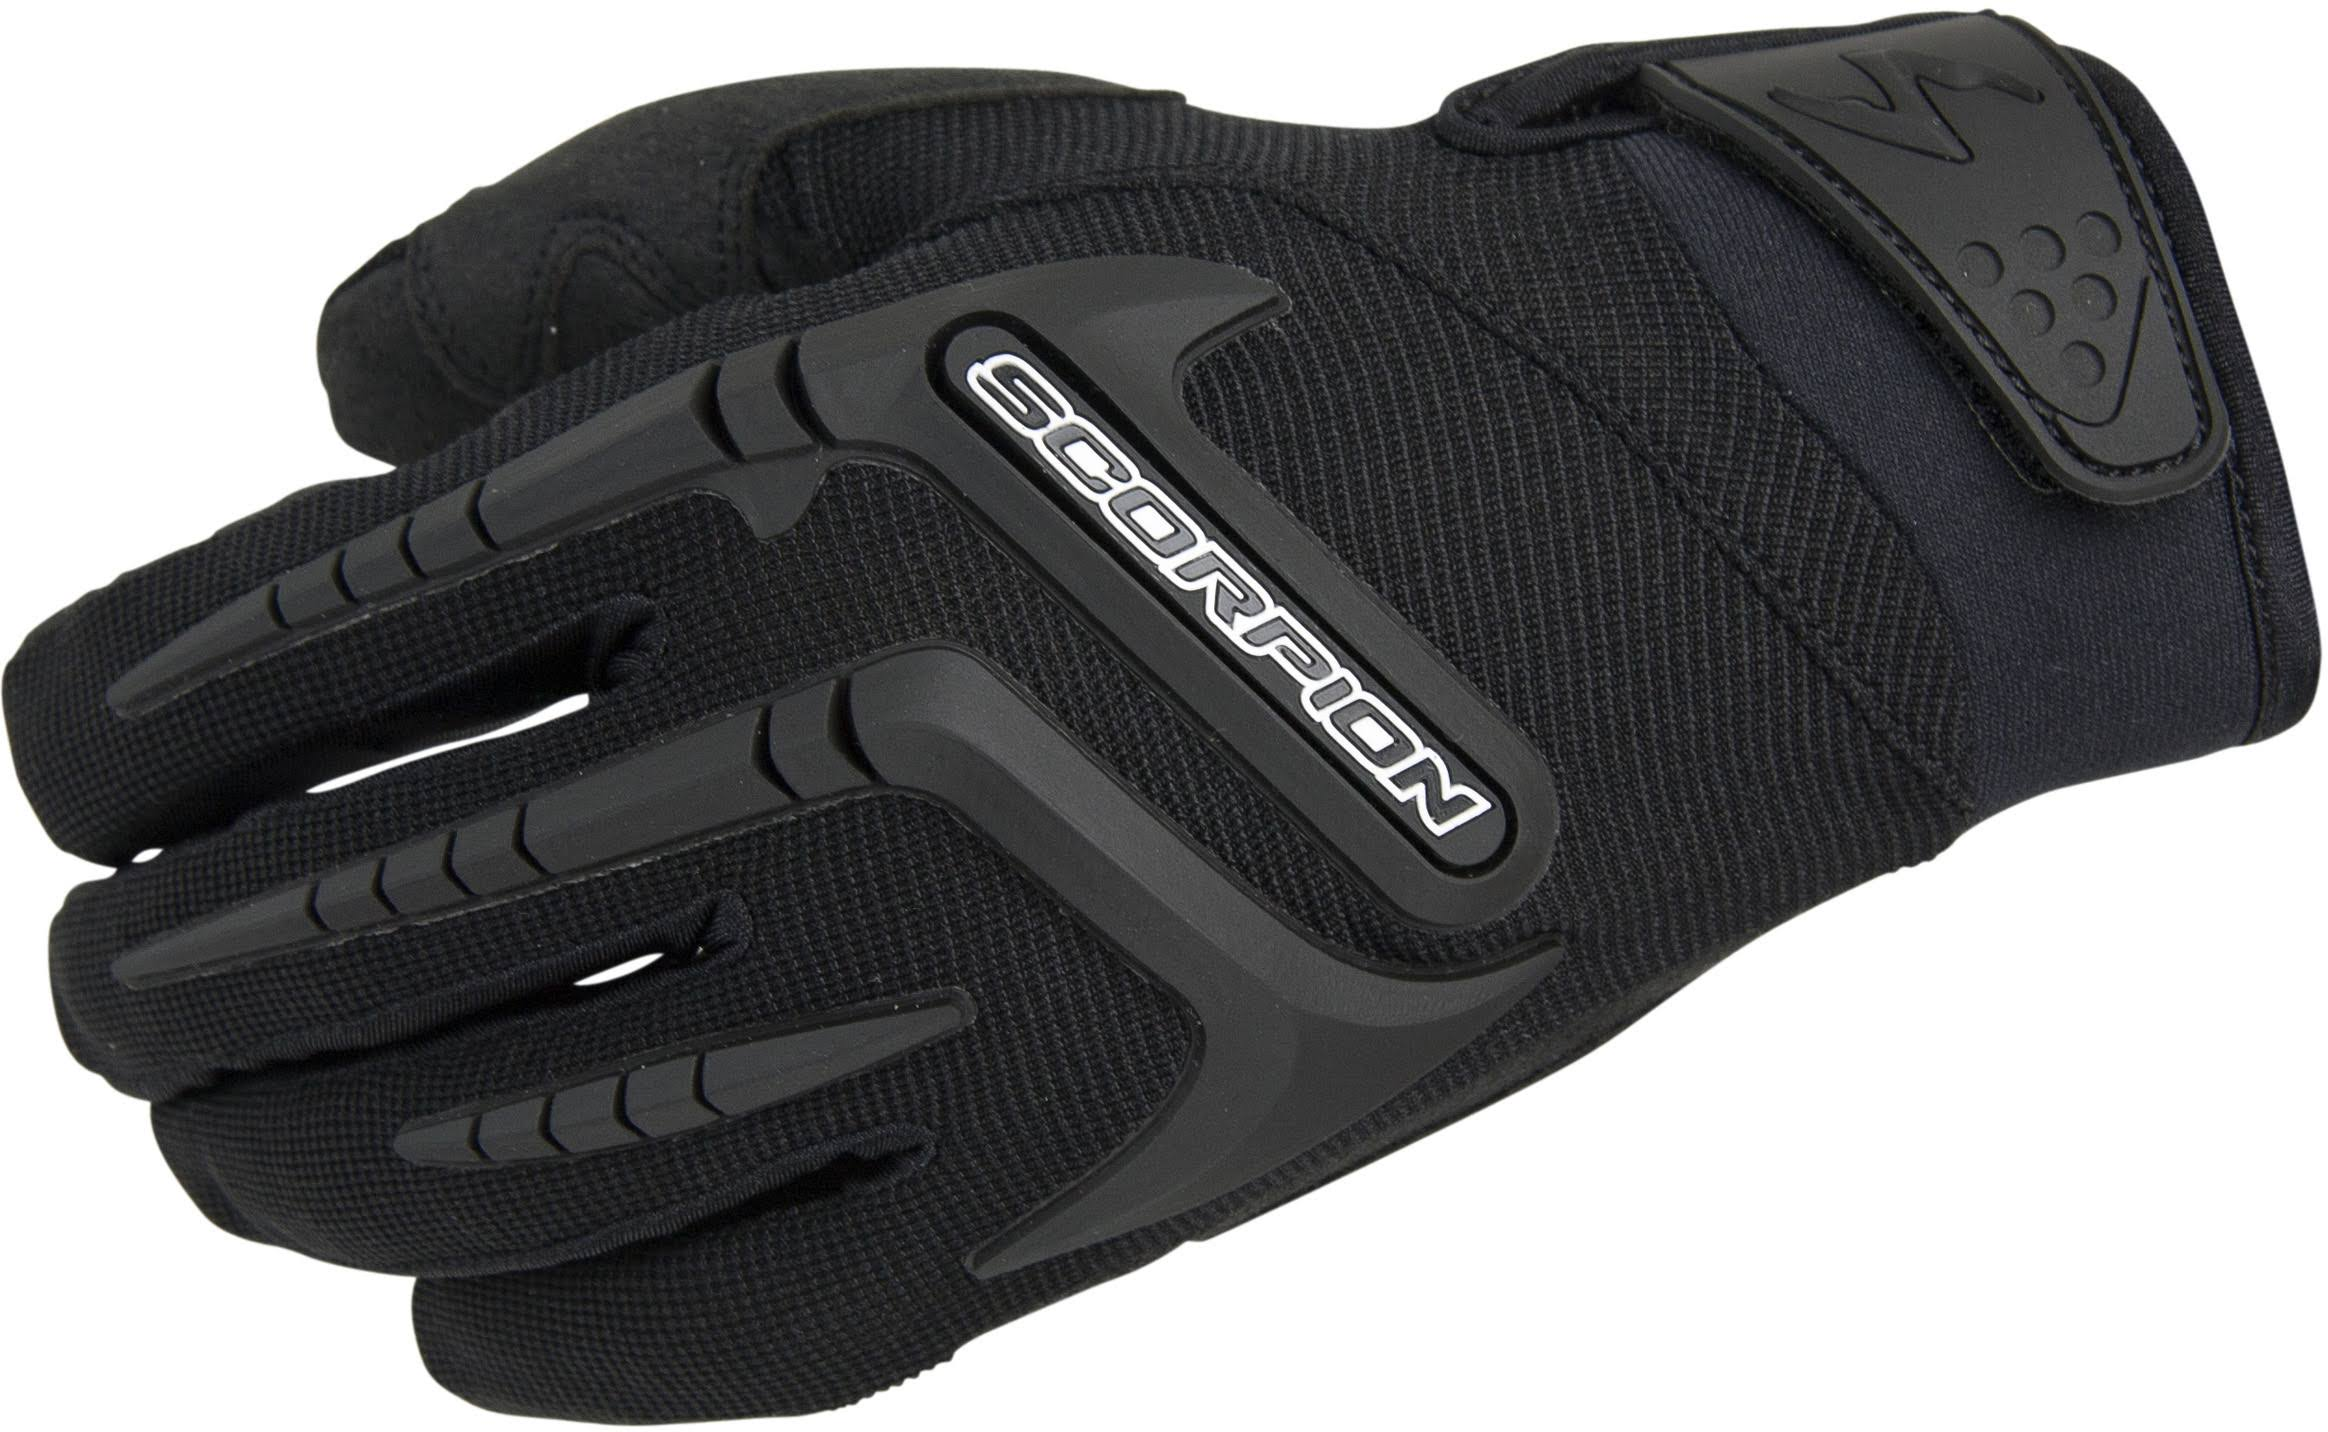 Scorpion Women's Skrub Motorcycle Gloves - Black, X Large